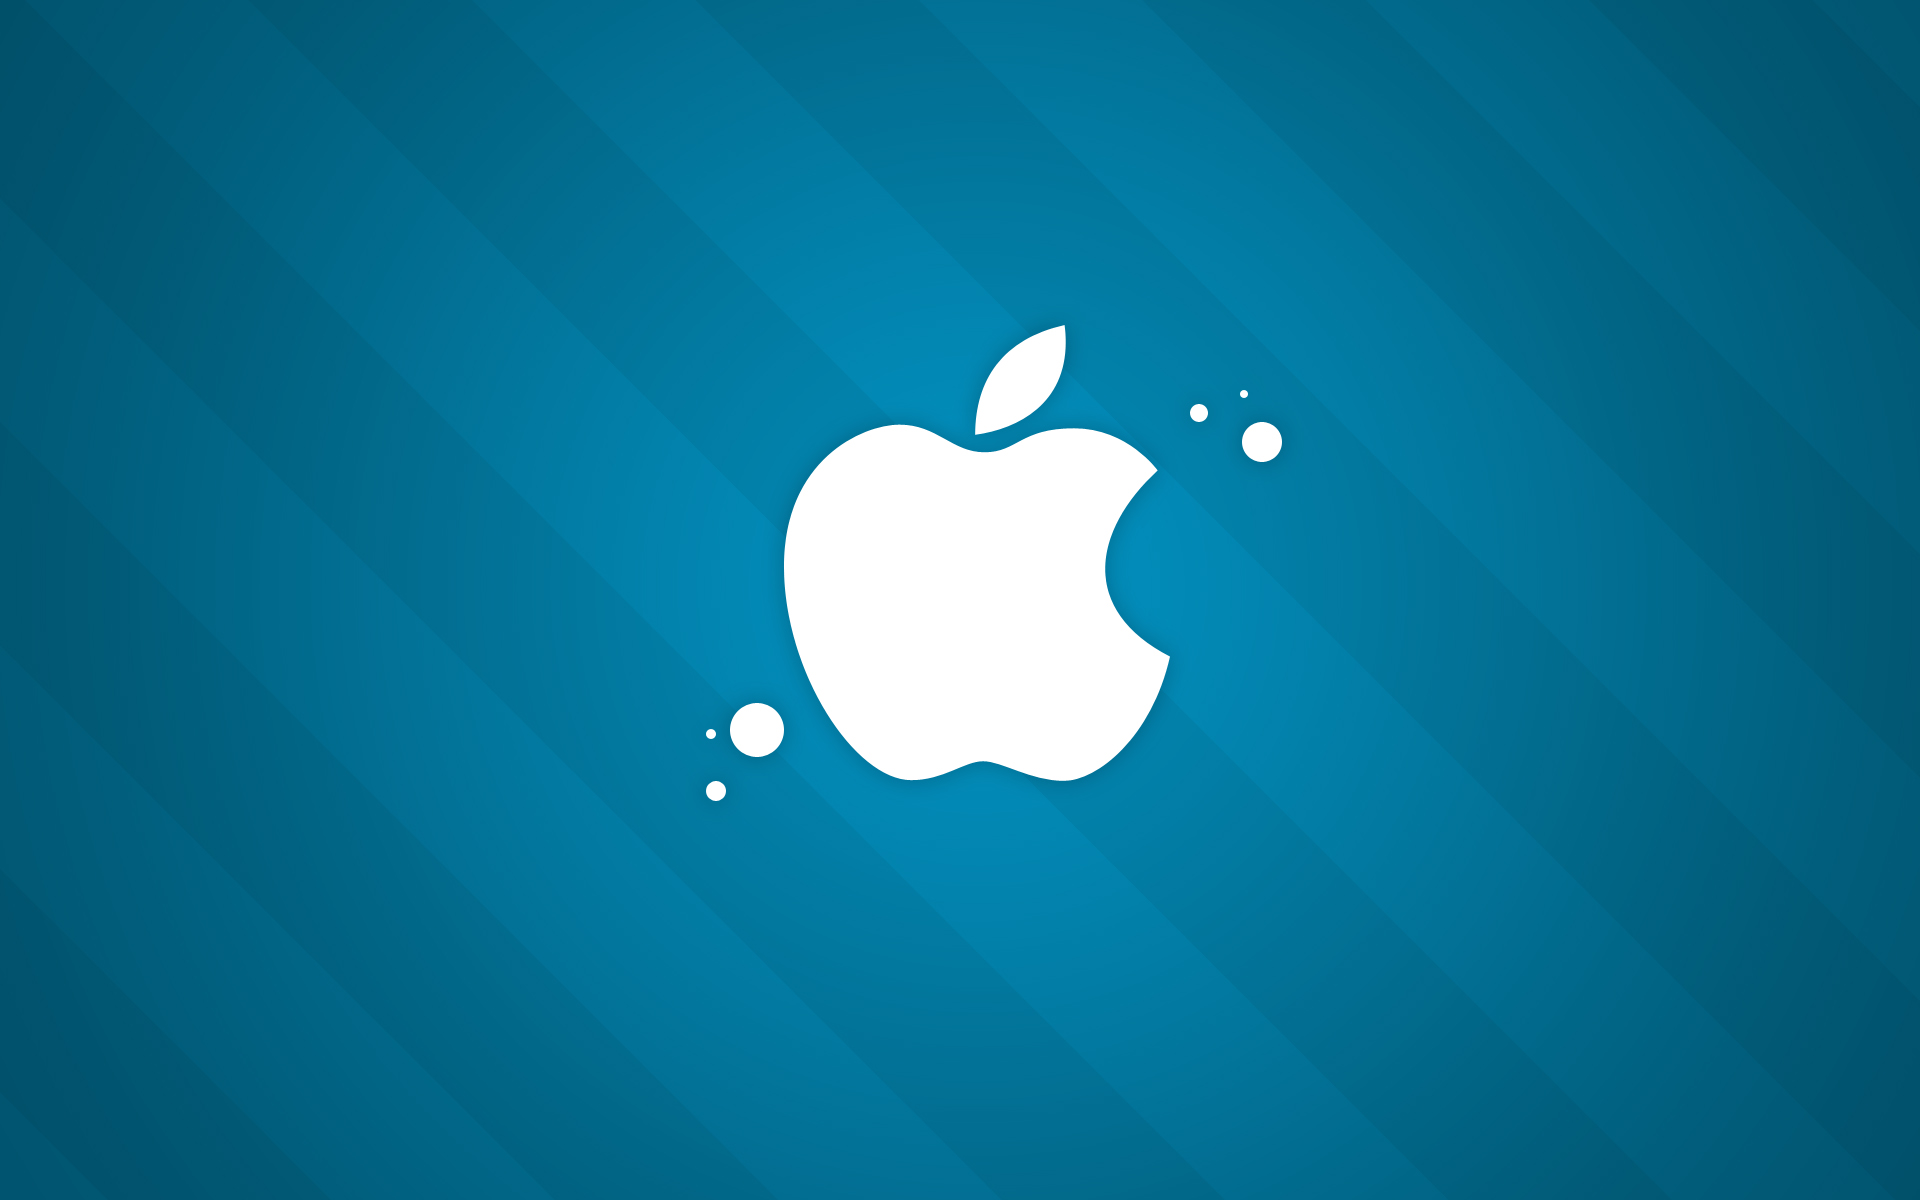 MAC Book Pro Wallpapers 1920x1200